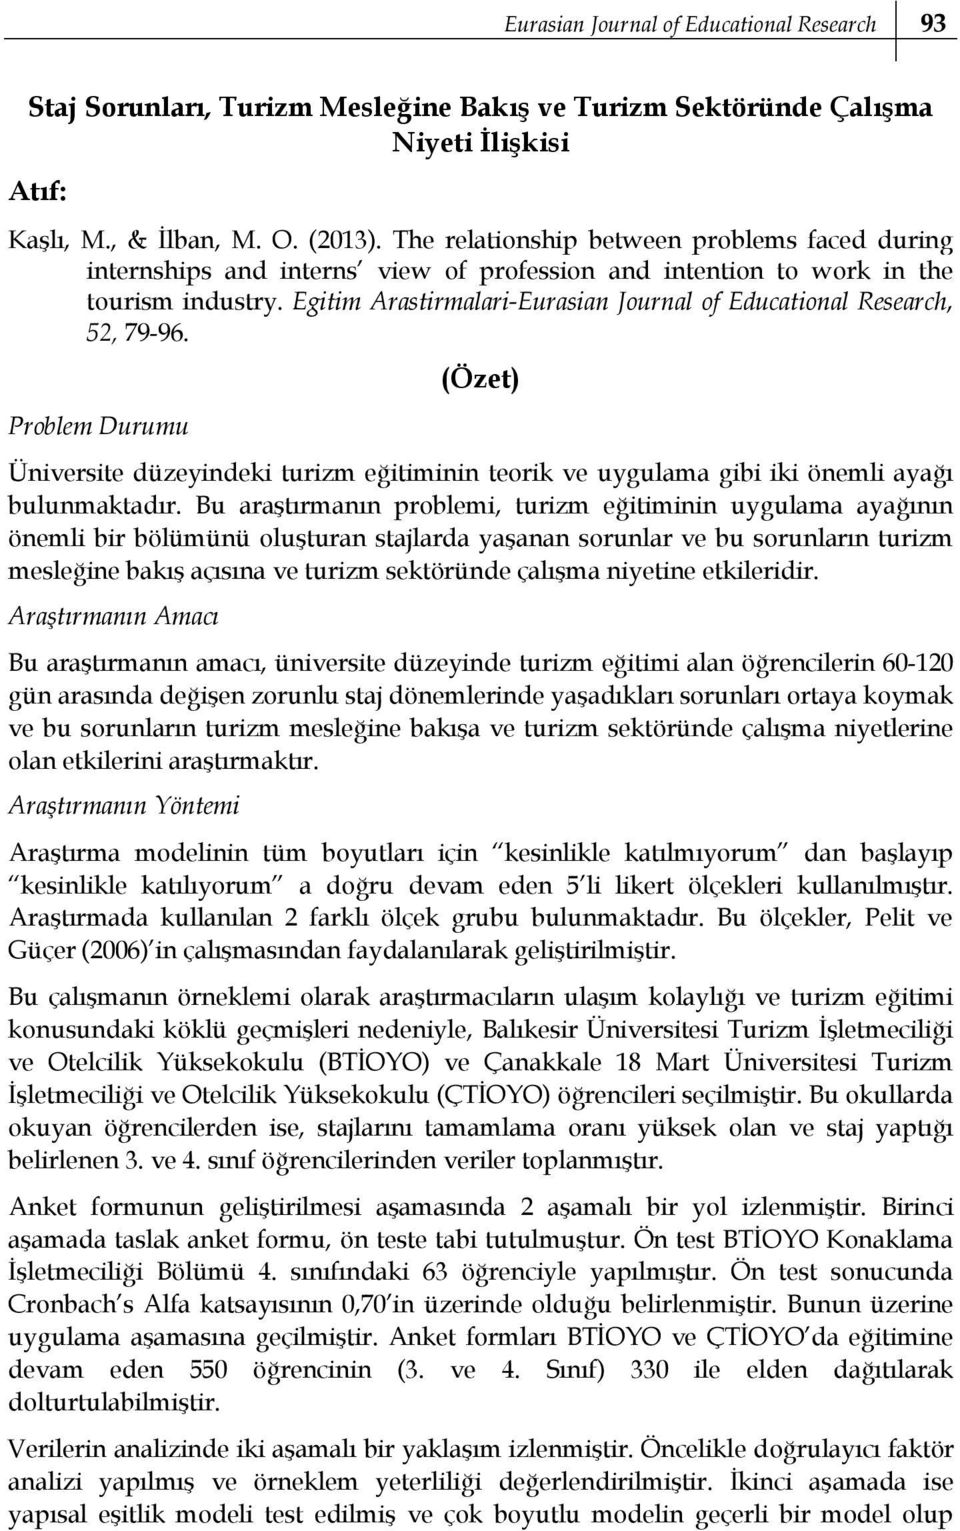 Egitim Arastirmalari-Eurasian Journal of Educational Research, 52, 79-96. Problem Durumu (Özet) Üniversite düzeyindeki turizm eğitiminin teorik ve uygulama gibi iki önemli ayağı bulunmaktadır.